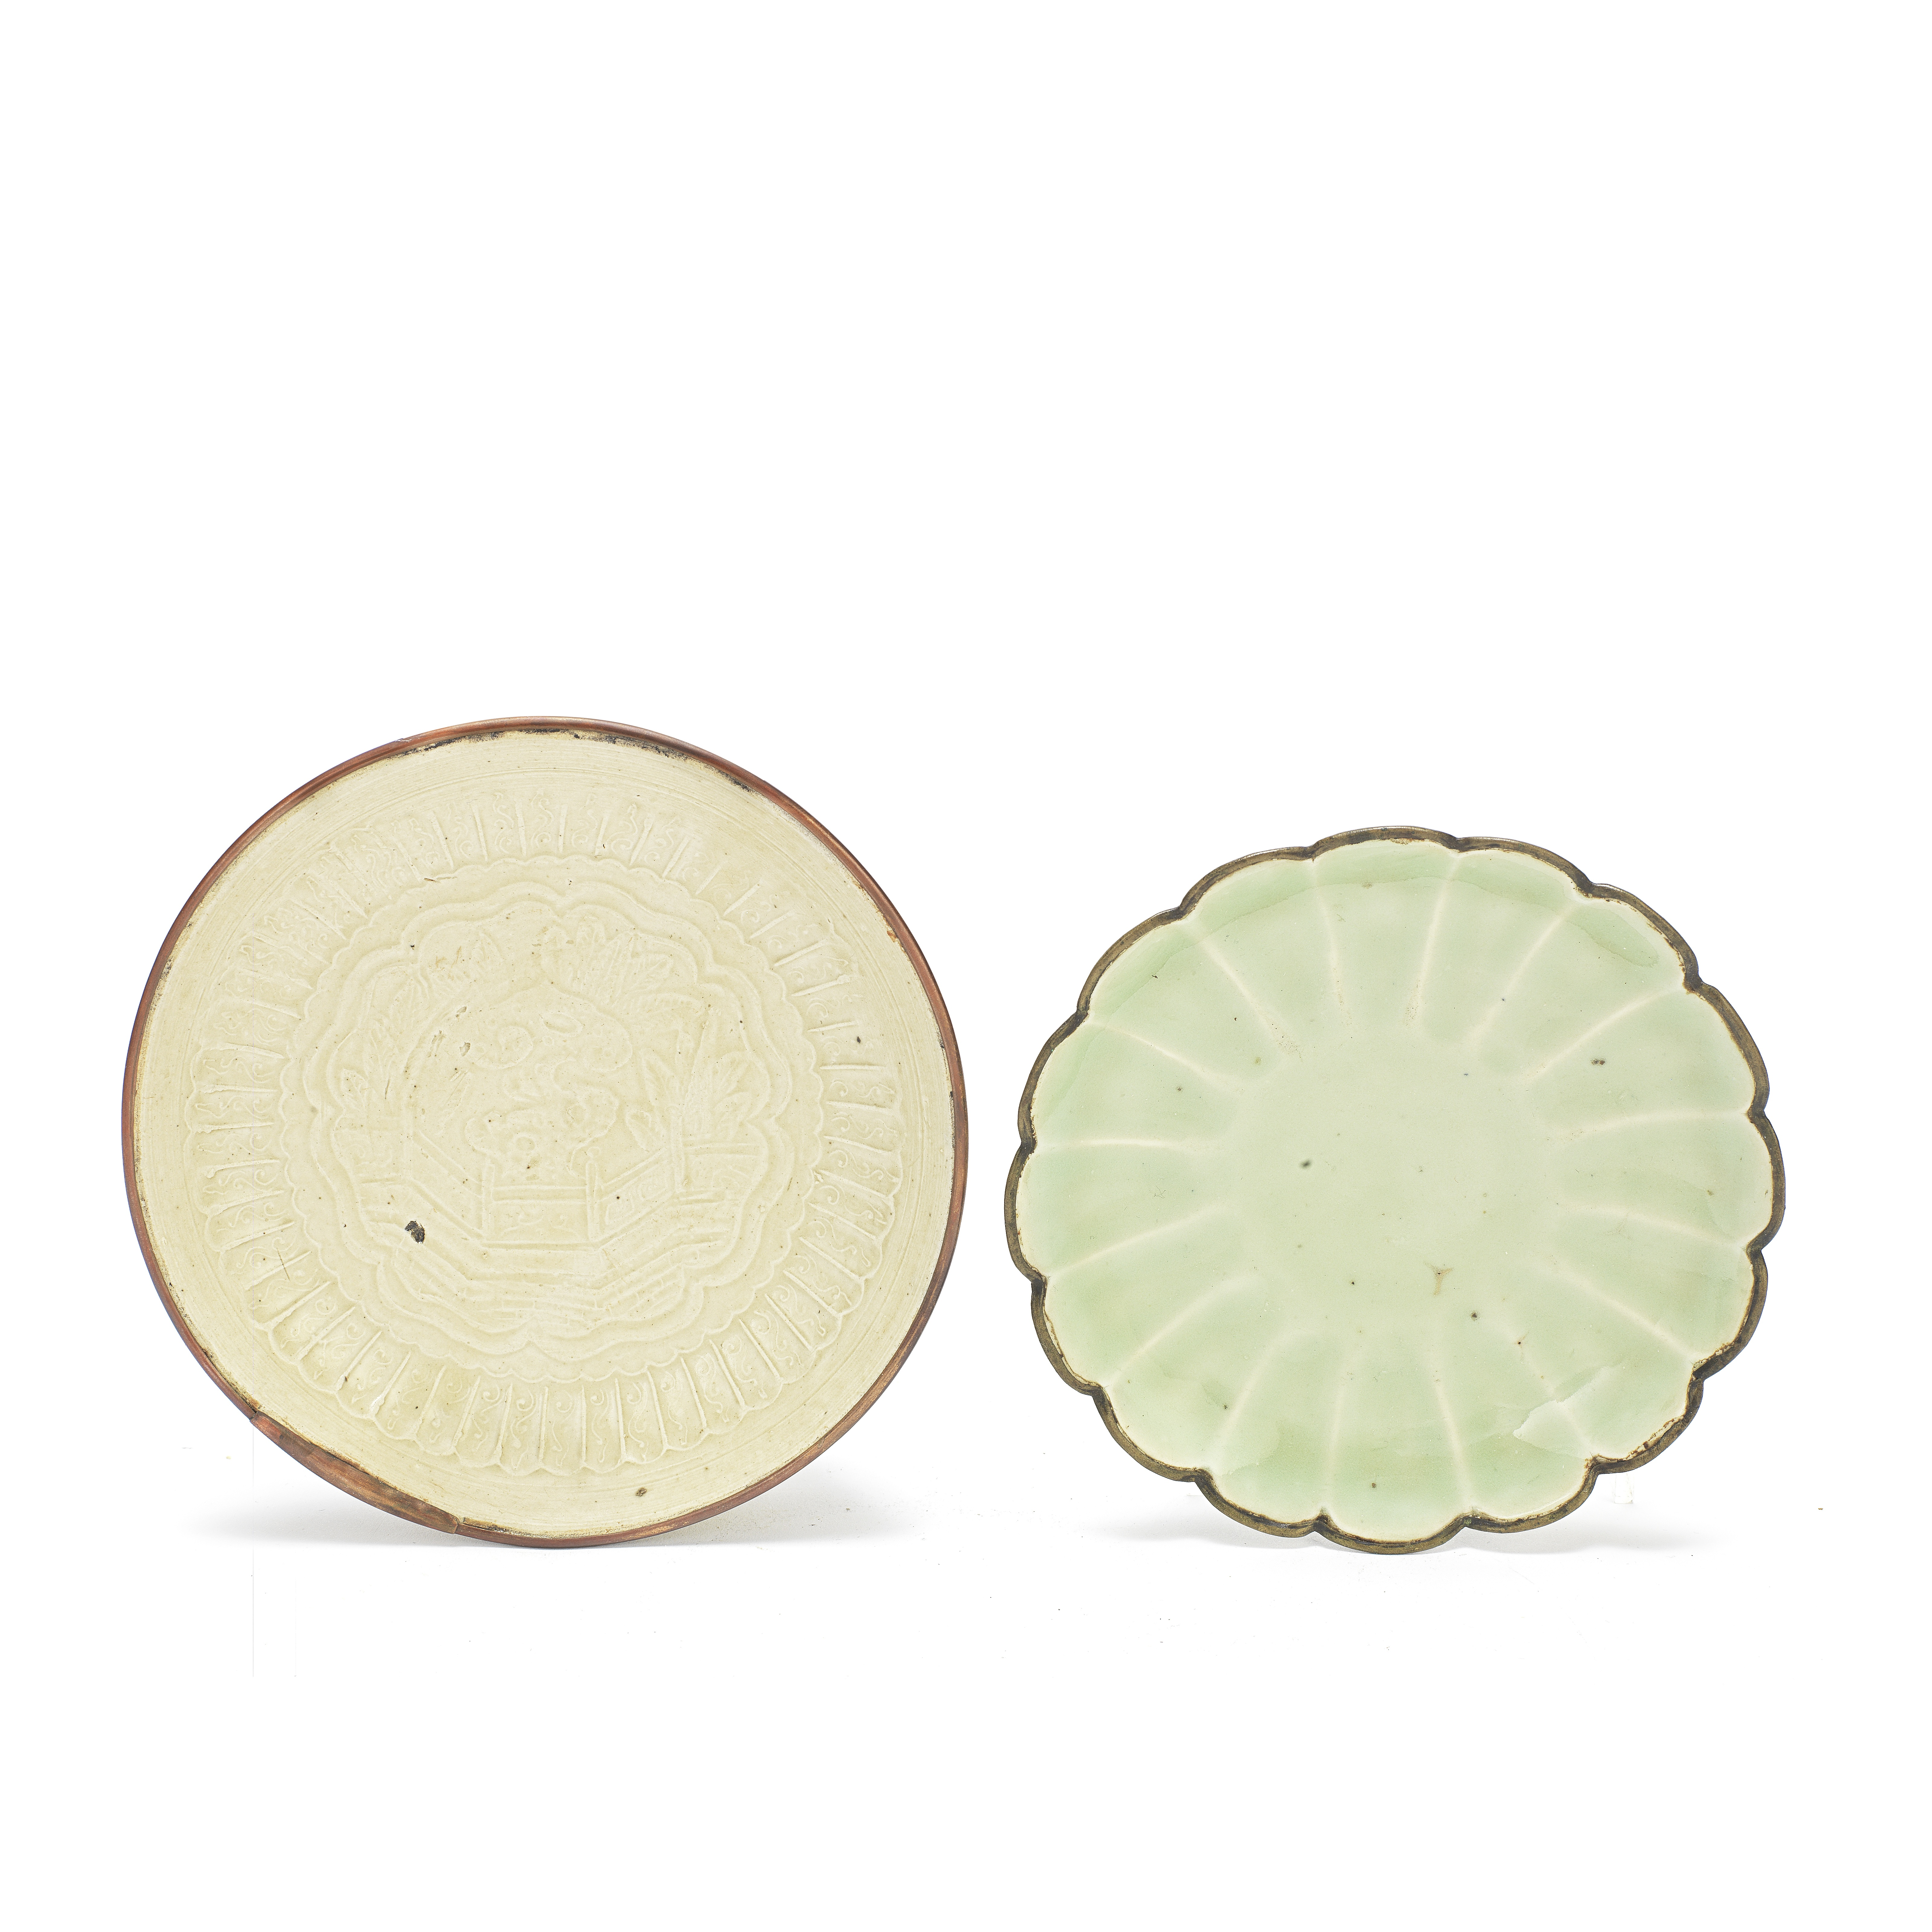 A SMALL LONGQUAN CELADON-GLAZED DISH AND A MOULDED DING SAUCER DISH 13th century (2)